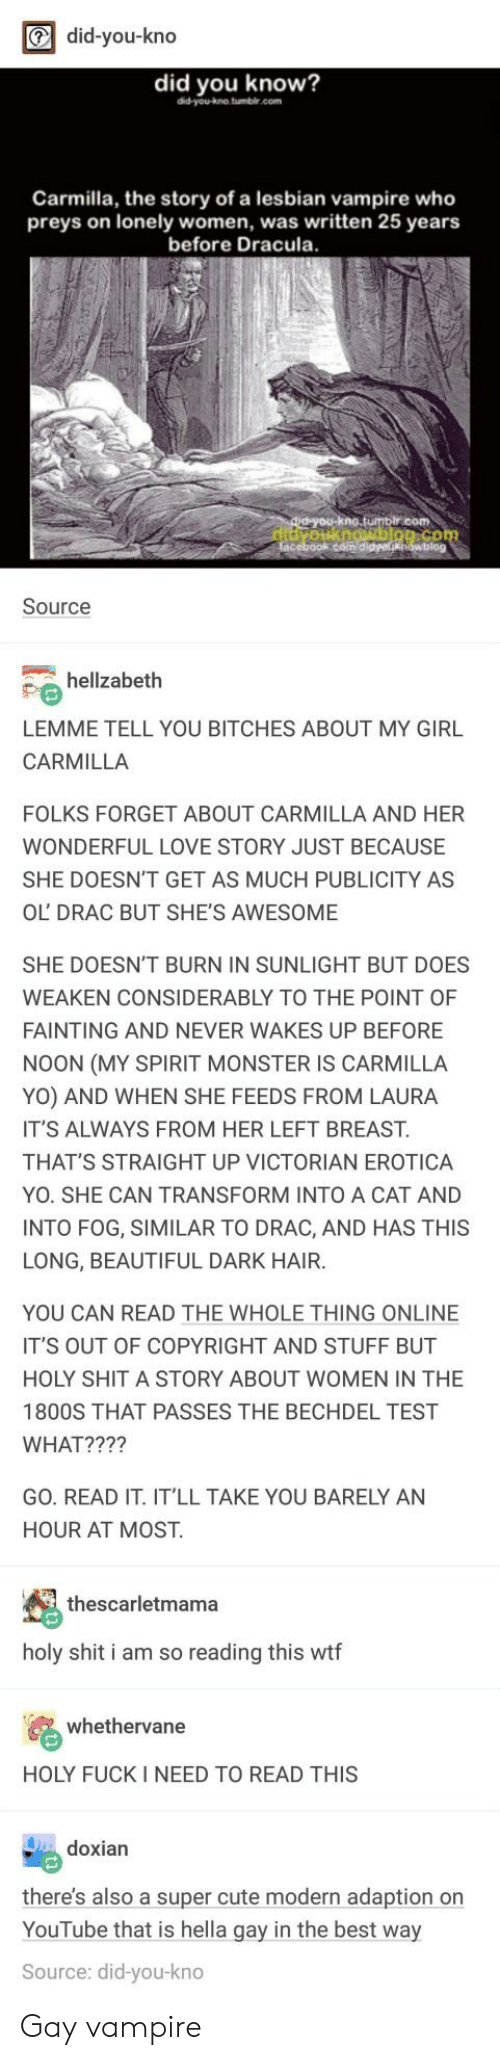 Beautiful, Cute, and Love: did-you-kno  did you know?  did-you-kno tumbl.com  Carmilla, the story of a lesbian vampire who  preys on lonely women, was written 25 years  before Dracula  com  Source  hellzabeth  LEMME TELL YOU BITCHES ABOUT MY GIRL  CARMILLA  FOLKS FORGET ABOUT CARMILLA AND HER  WONDERFUL LOVE STORY JUST BECAUSE  SHE DOESN'T GET AS MUCH PUBLICITY AS  OL DRAC BUT SHE'S AWESOME  SHE DOESN'T BURN IN SUNLIGHT BUT DOES  WEAKEN CONSIDERABLY TO THE POINT OF  FAINTING AND NEVER WAKES UP BEFORE  NOON (MY SPIRIT MONSTER IS CARMILLA  YO) AND WHEN SHE FEEDS FROM LAURA  IT'S ALWAYS FROM HER LEFT BREAST.  THAT'S STRAIGHT UP VICTORIAN EROTICA  YO. SHE CAN TRANSFORM INTO A CAT AND  INTO FOG, SIMILAR TO DRAC, AND HAS THIS  LONG, BEAUTIFUL DARK HAIR.  YOU CAN READ THE WHOLE THING ONLINE  IT'S OUT OF COPYRIGHT AND STUFF BUT  HOLY SHIT A STORY ABOUT WOMEN IN THE  1800S THAT PASSES THE BECHDEL TEST  WHAT????  GO. READ IT. IT'LL TAKE YOU BARELY AN  HOUR AT MOST.  thescarletmama  holy shit i am so reading this wtf  whethervane  HOLY FUCK I NEED TO READ THIS  doxian  there's also a super cute modern adaption on  YouTube that is hella gay in the best way  Source: did-you-kno Gay vampire